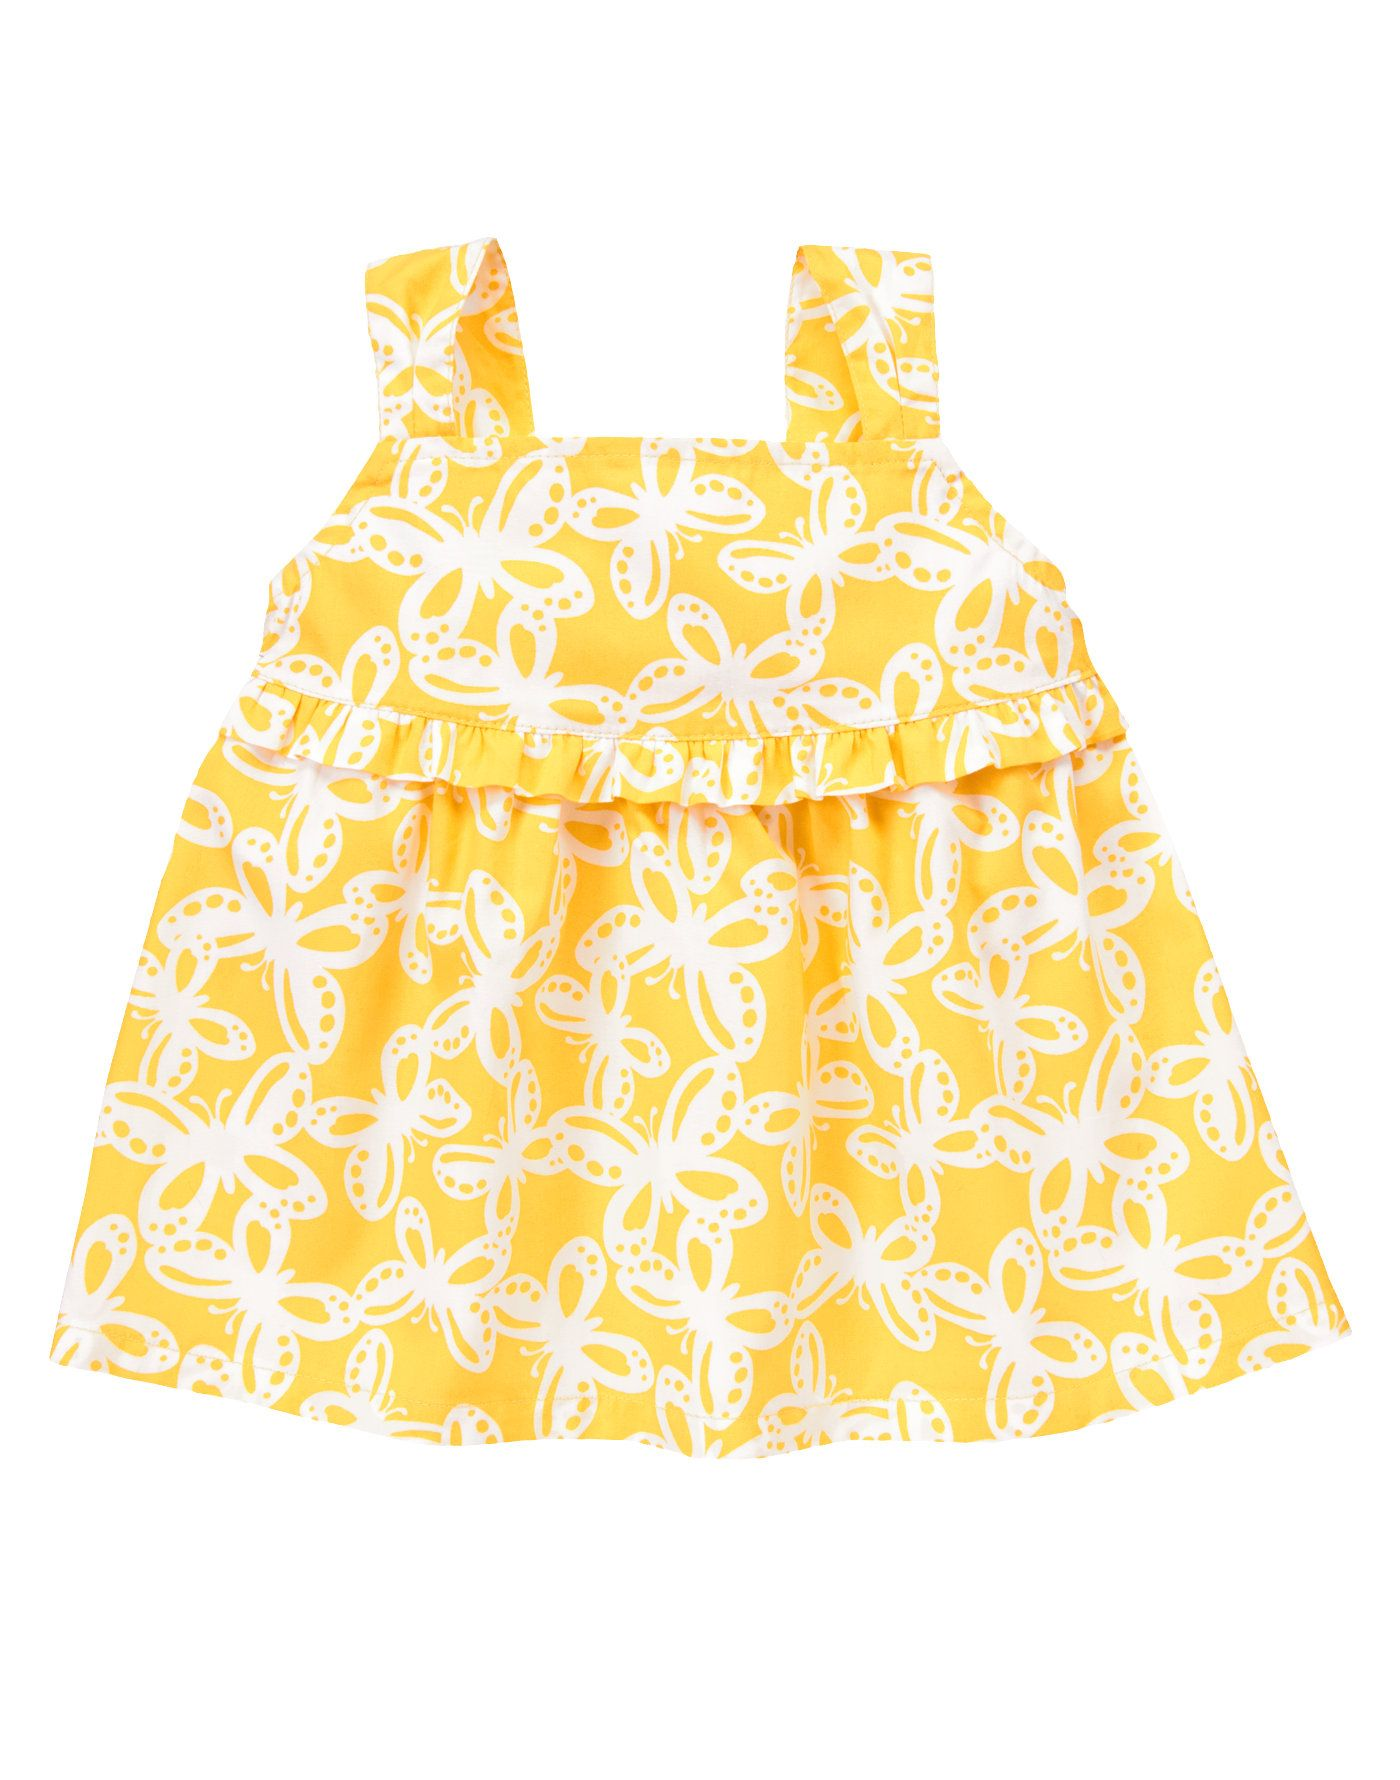 Gymboree Yellow /& Black Butterfly Print Yellow Romper Size 6-12 Mos /& UP NEW